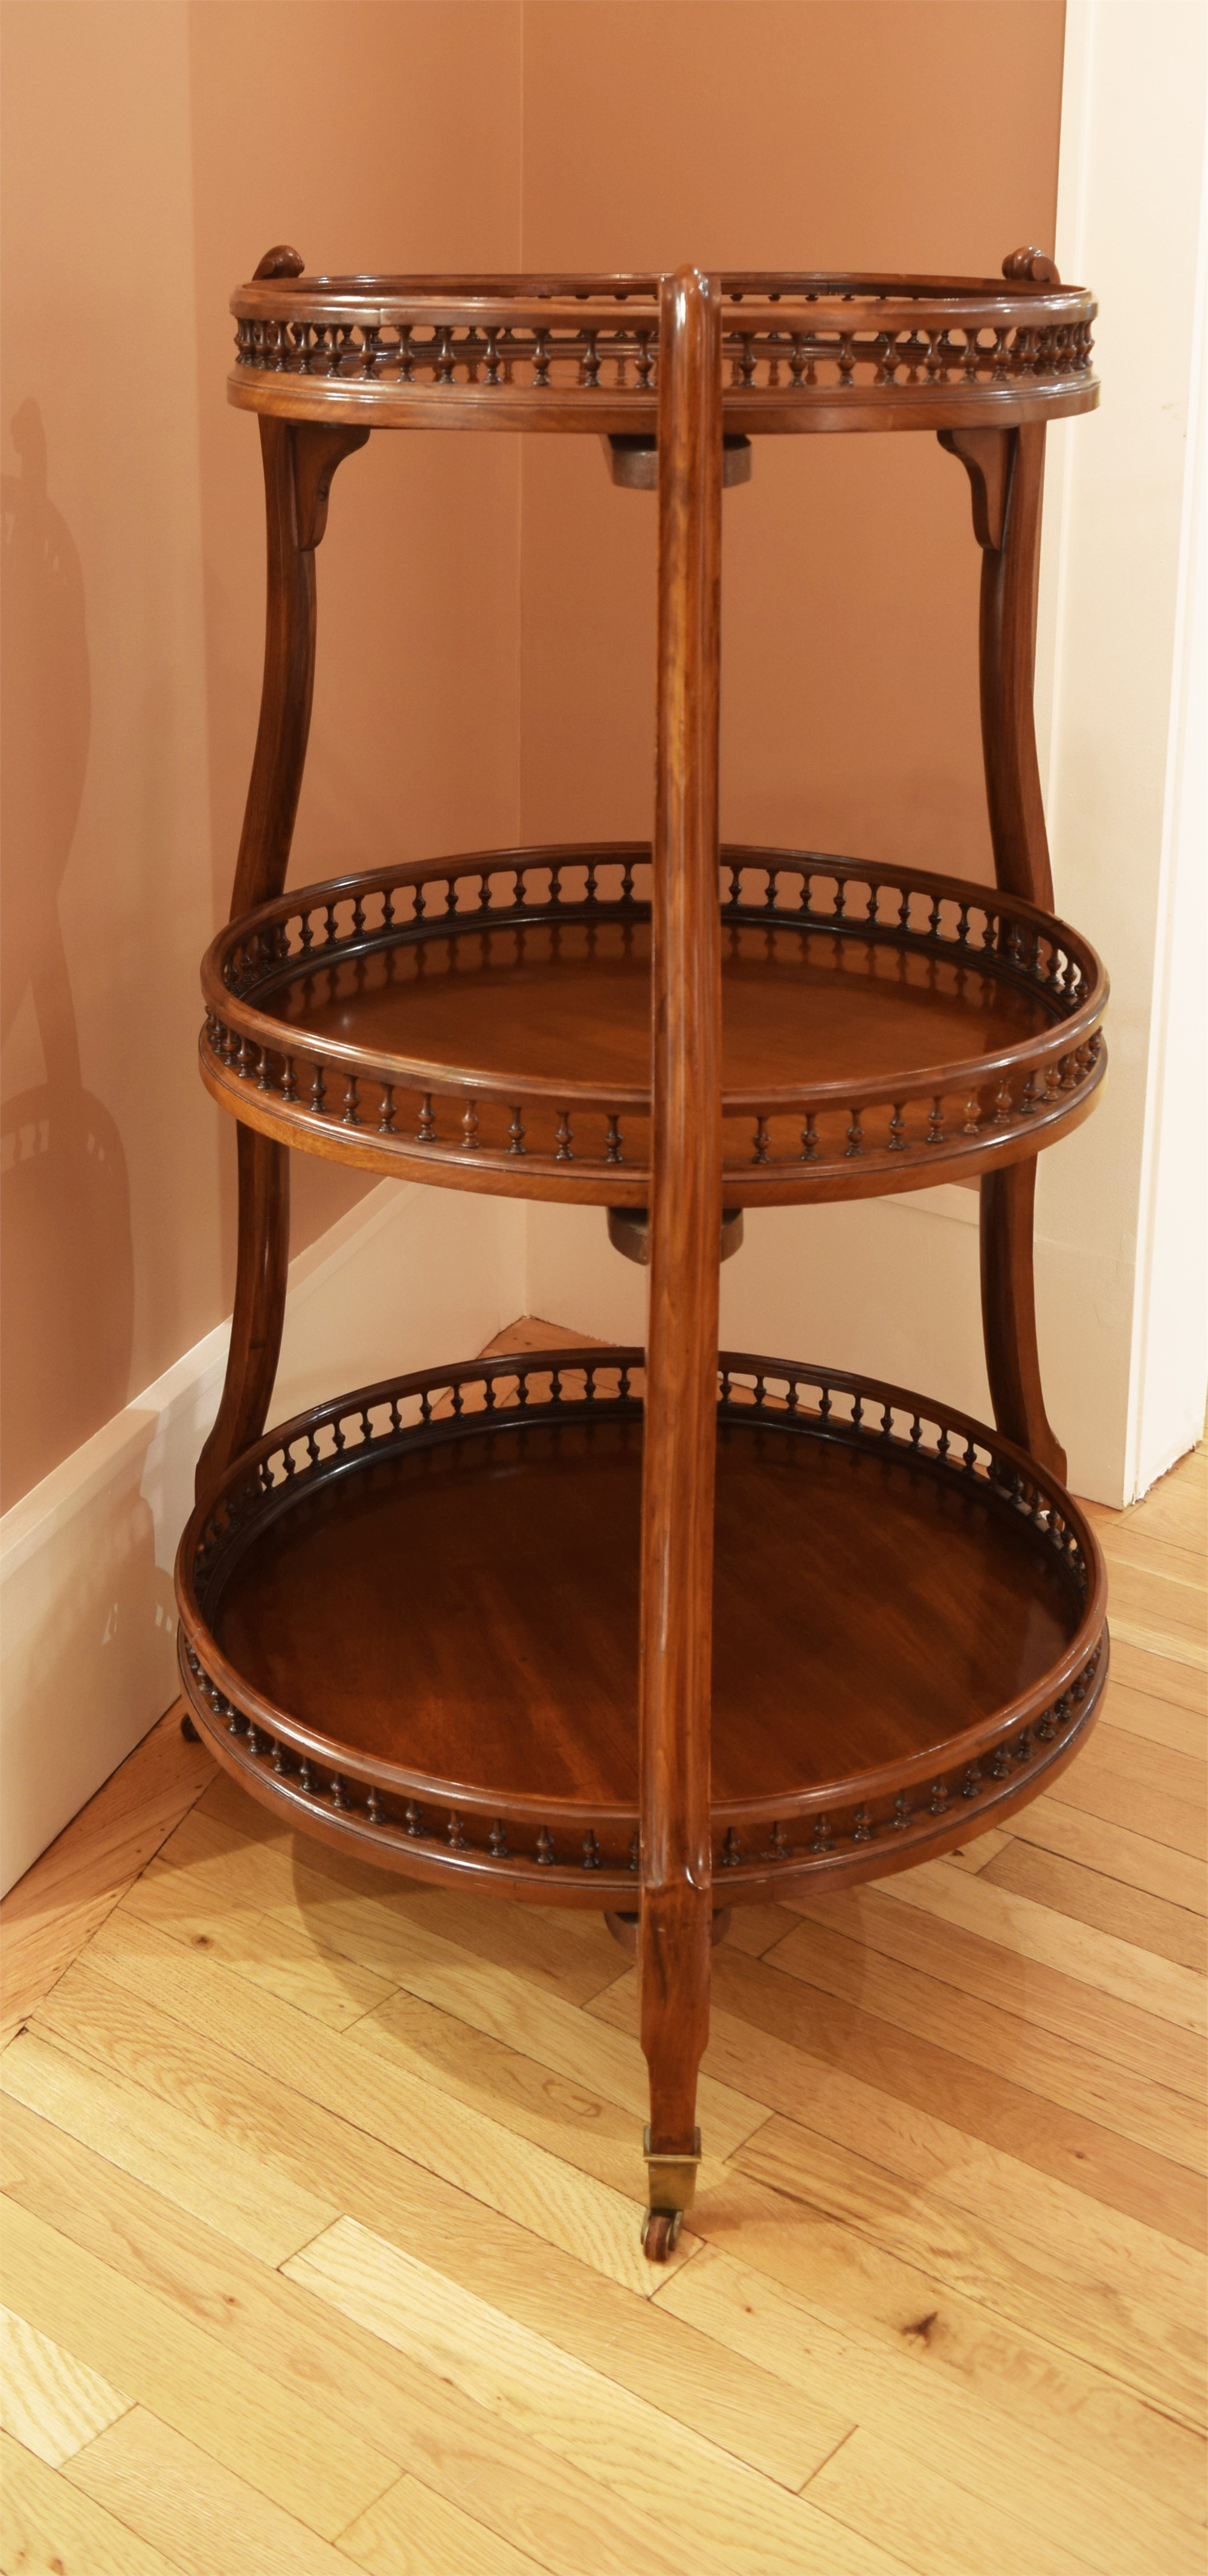 VICTORIAN THREE-TIERED ETAGERE WITH SWIVELING SHELVES